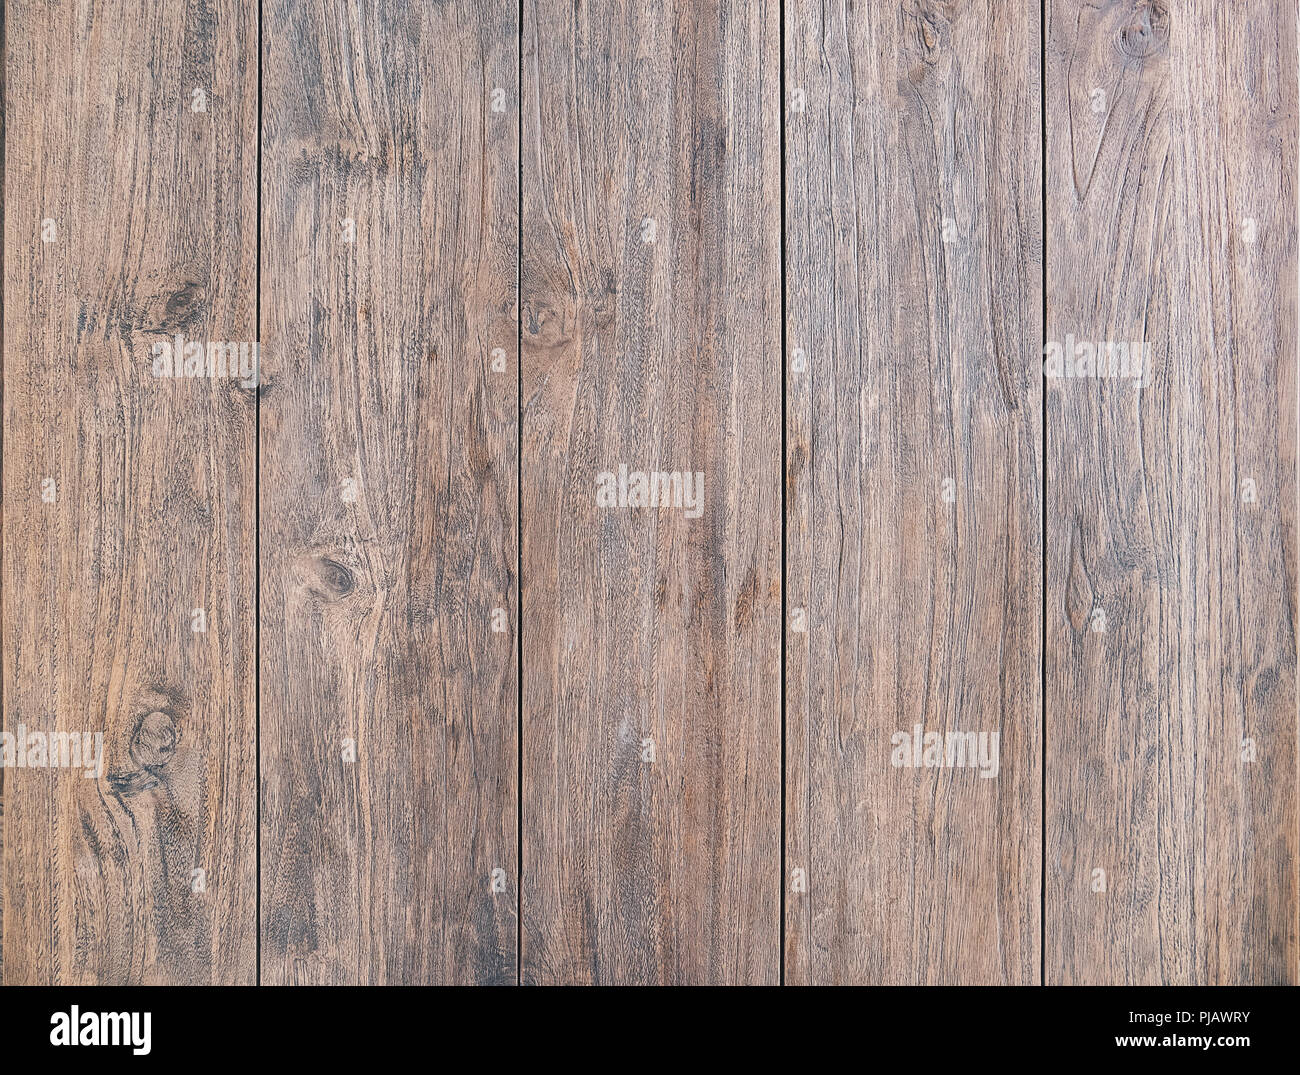 Wood table top view texture, use us wooden texture background used as space for text or image backdrop design - Stock Image